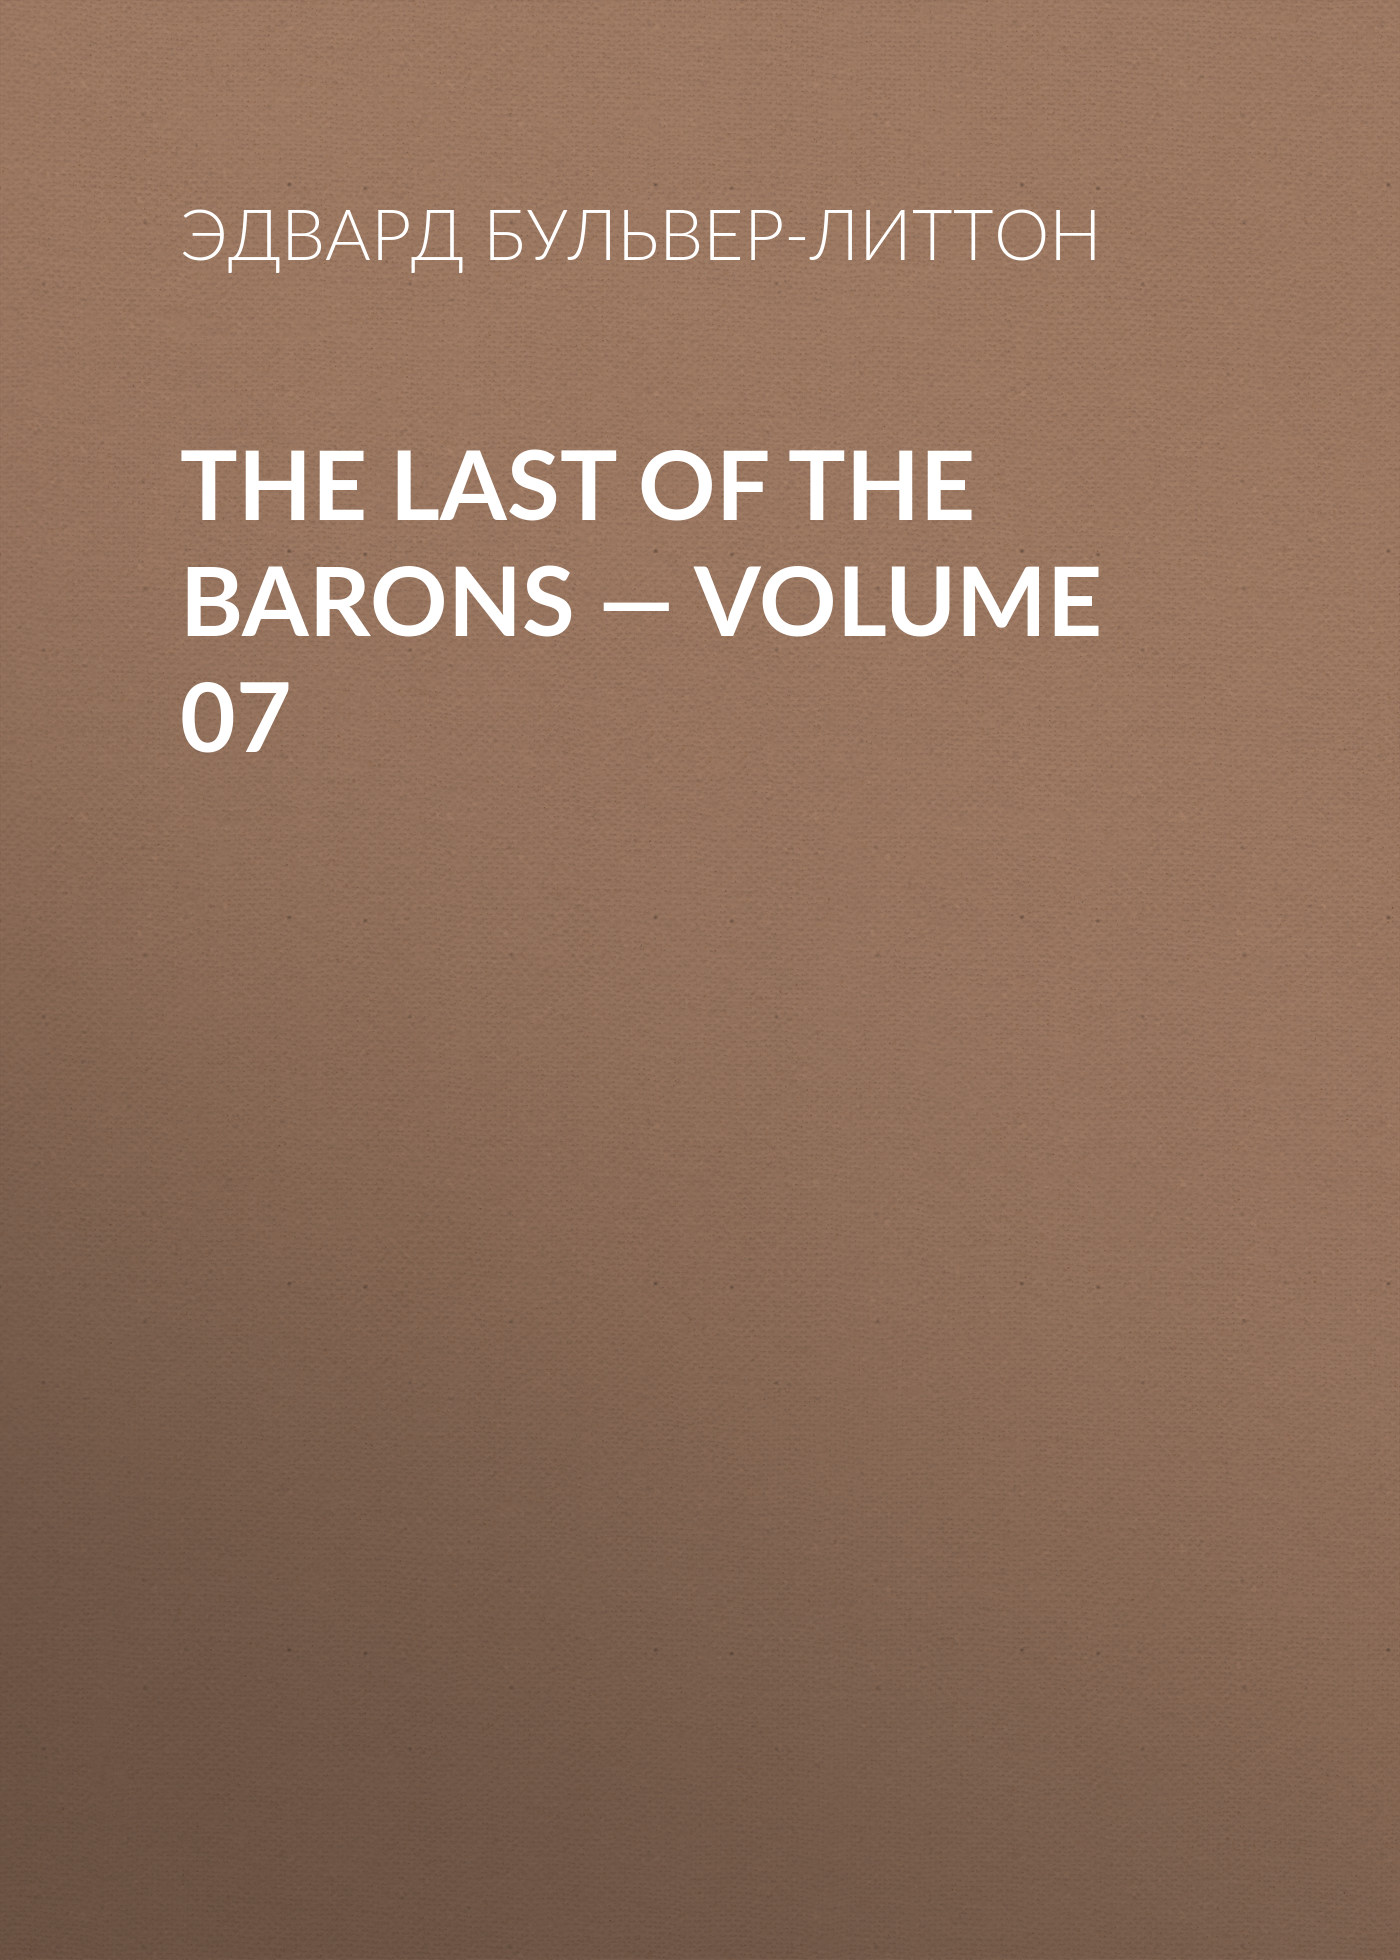 Эдвард Бульвер-Литтон The Last of the Barons — Volume 07 fayrene preston the barons of texas tess